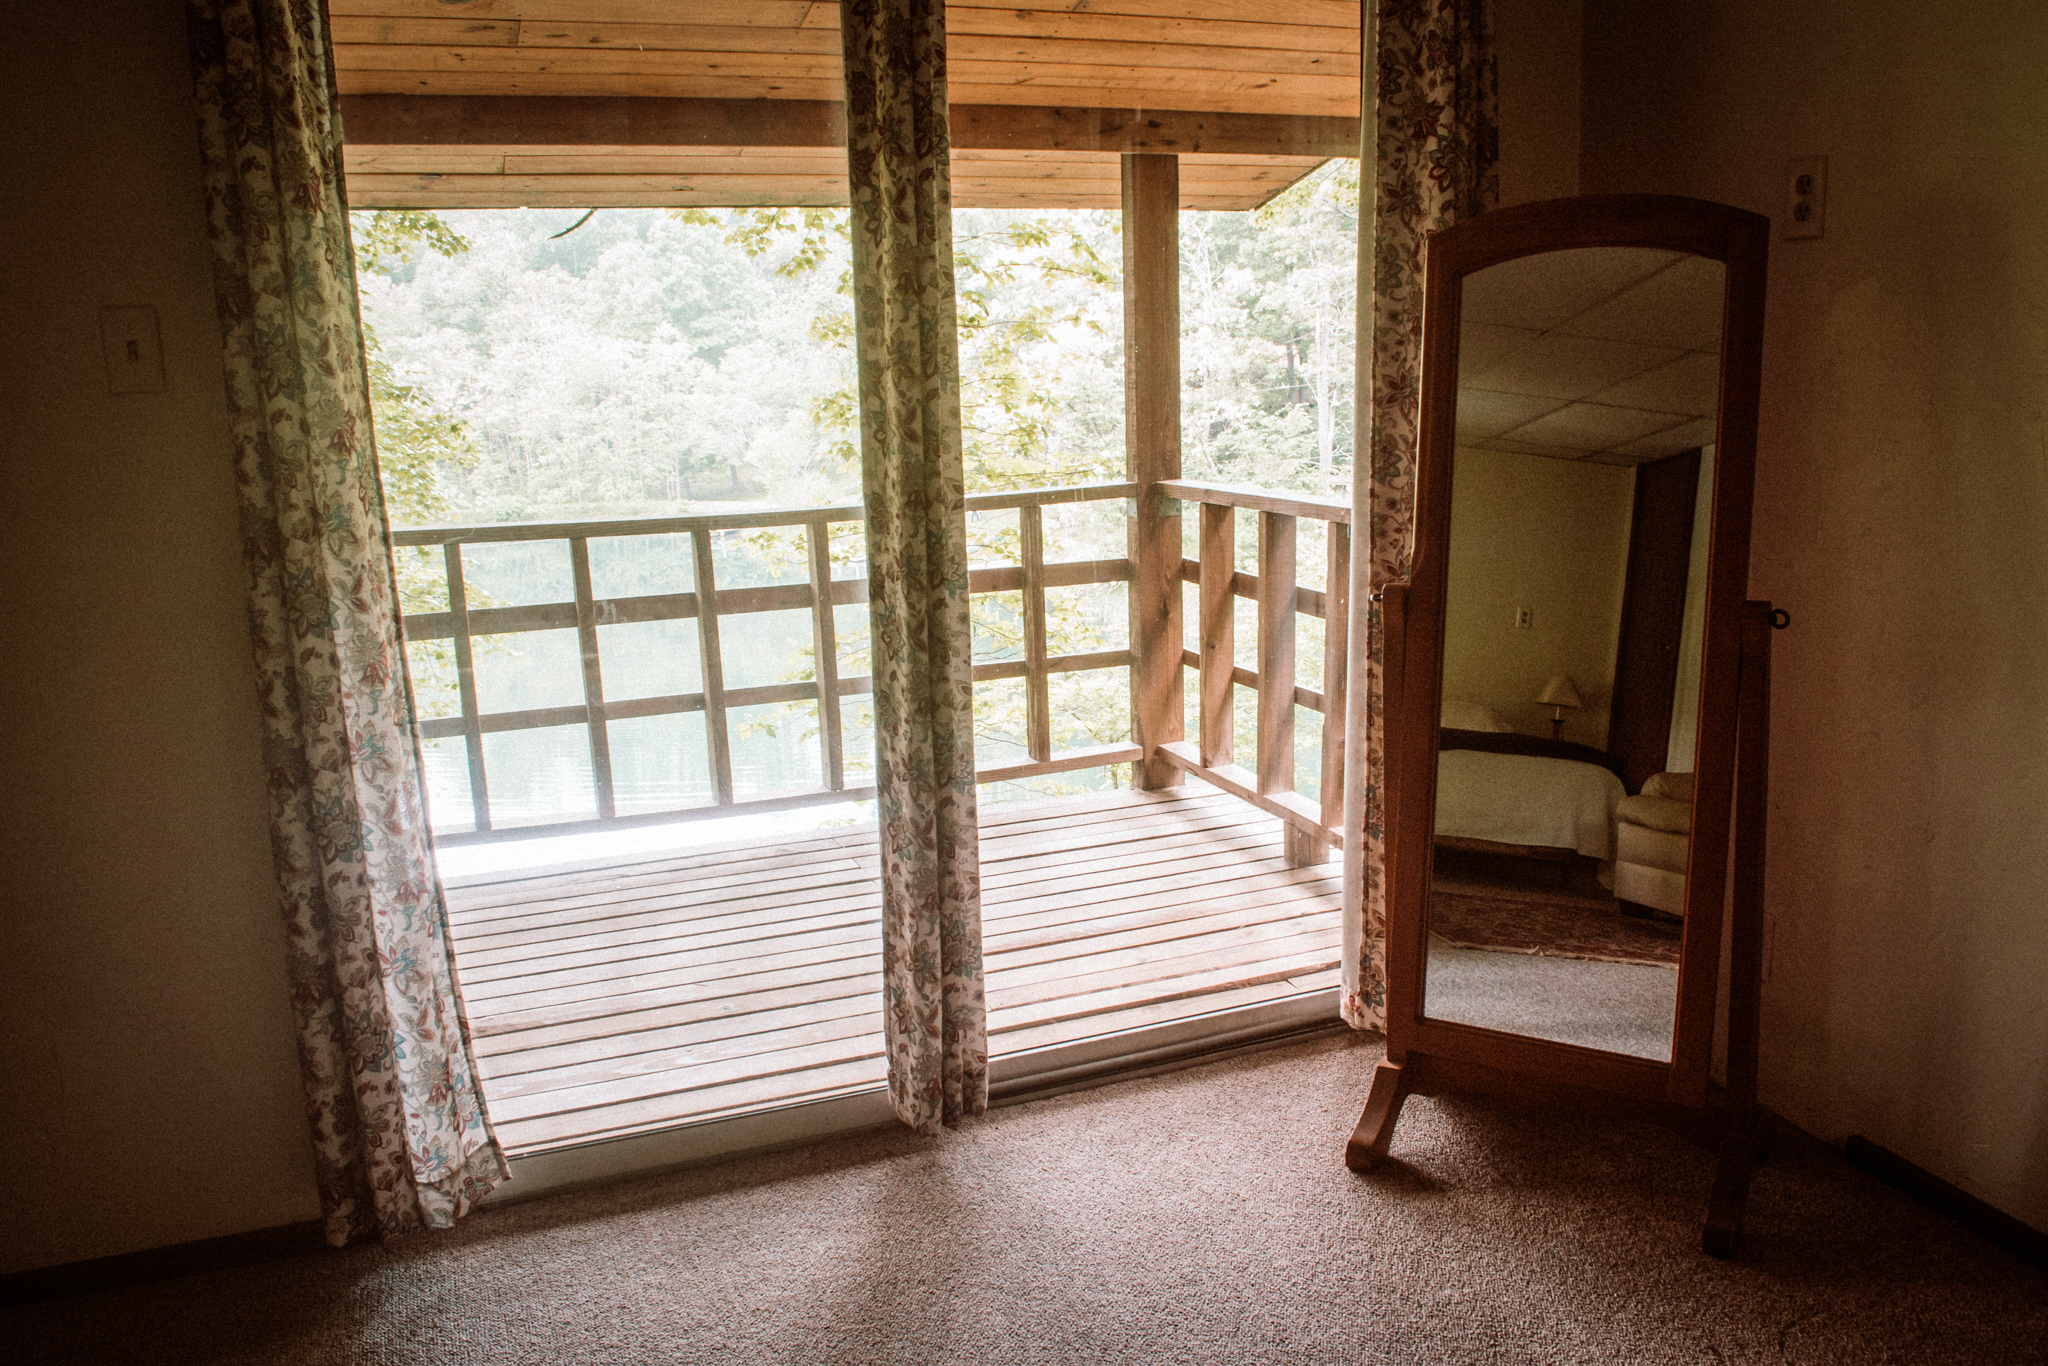 Upstairs King Bedroom in Cedar House - View of Bedroom in Mirror with view of porch. Deck overlooks lake.